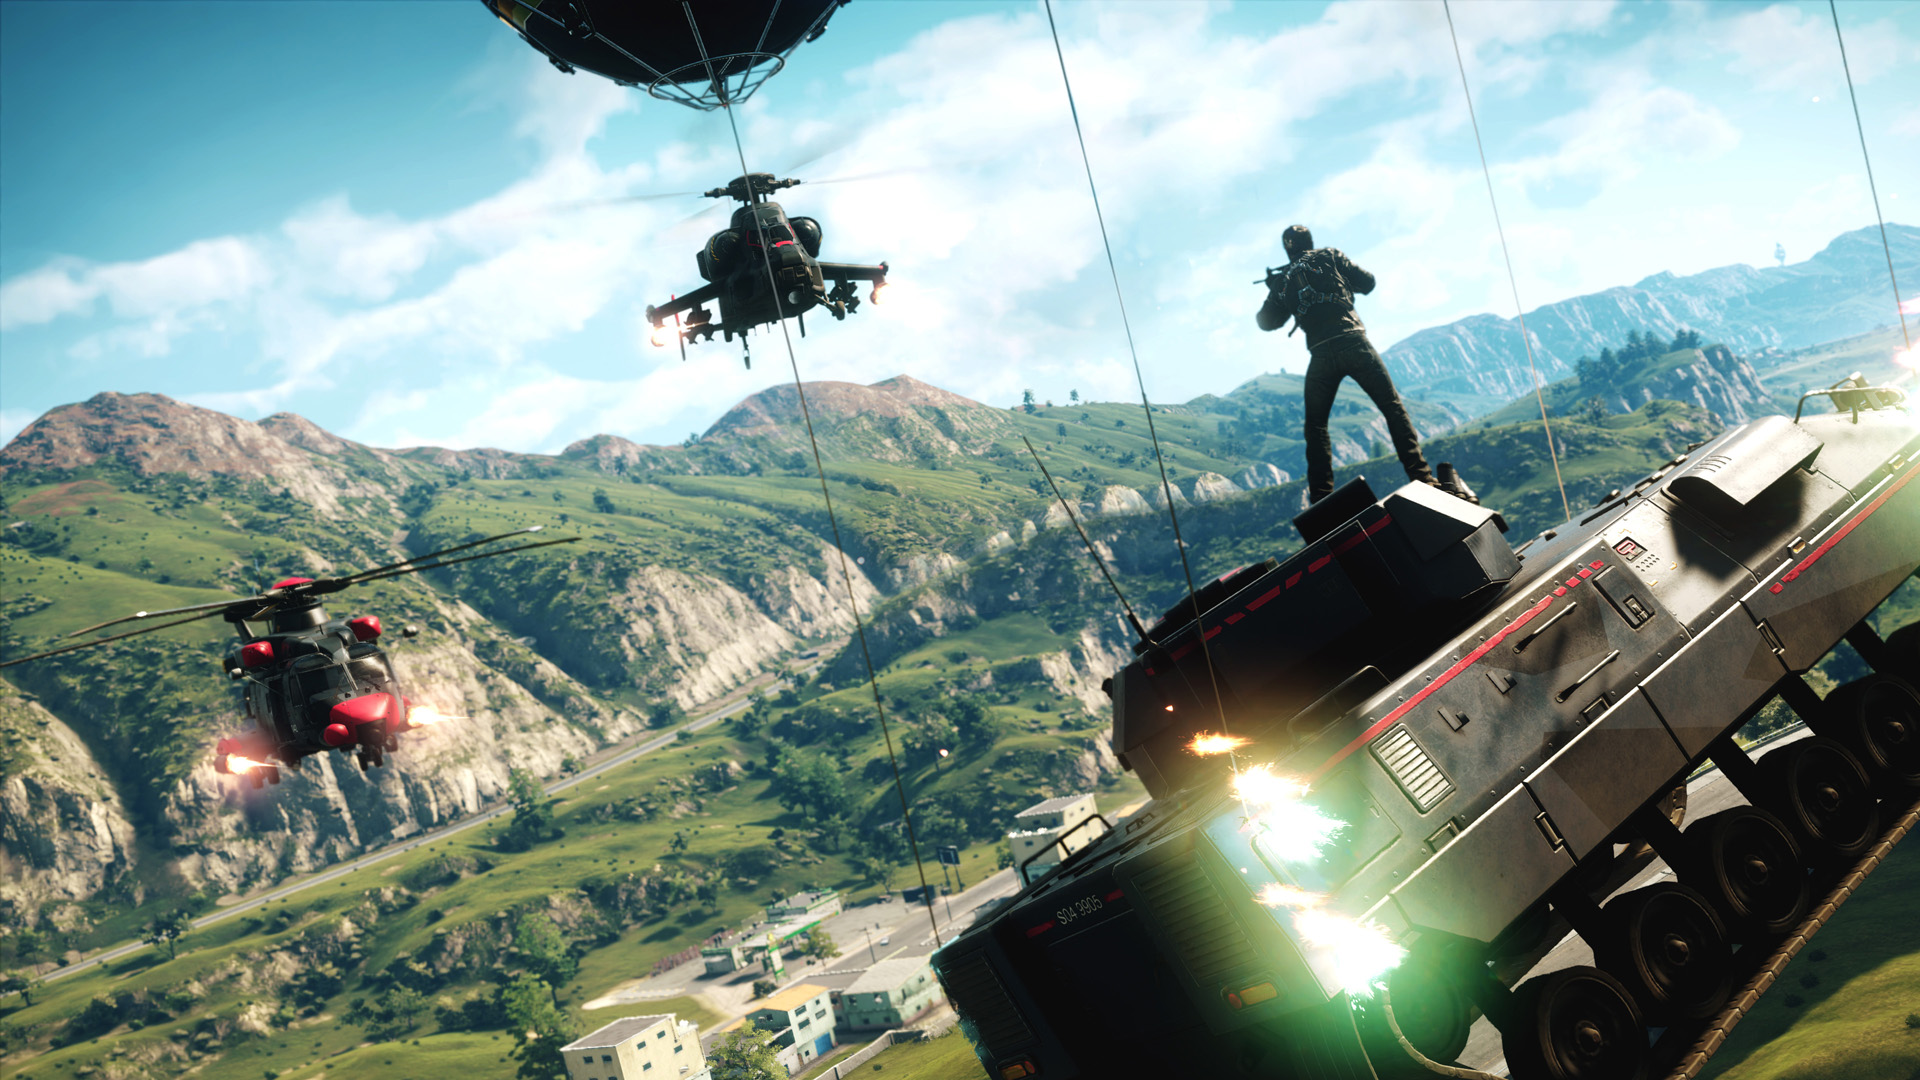 Скриншот *Just Cause 4 [PS4] 5.05 / 6.72 / 7.02 [EUR] (2018) [Русский] (v1.00)*